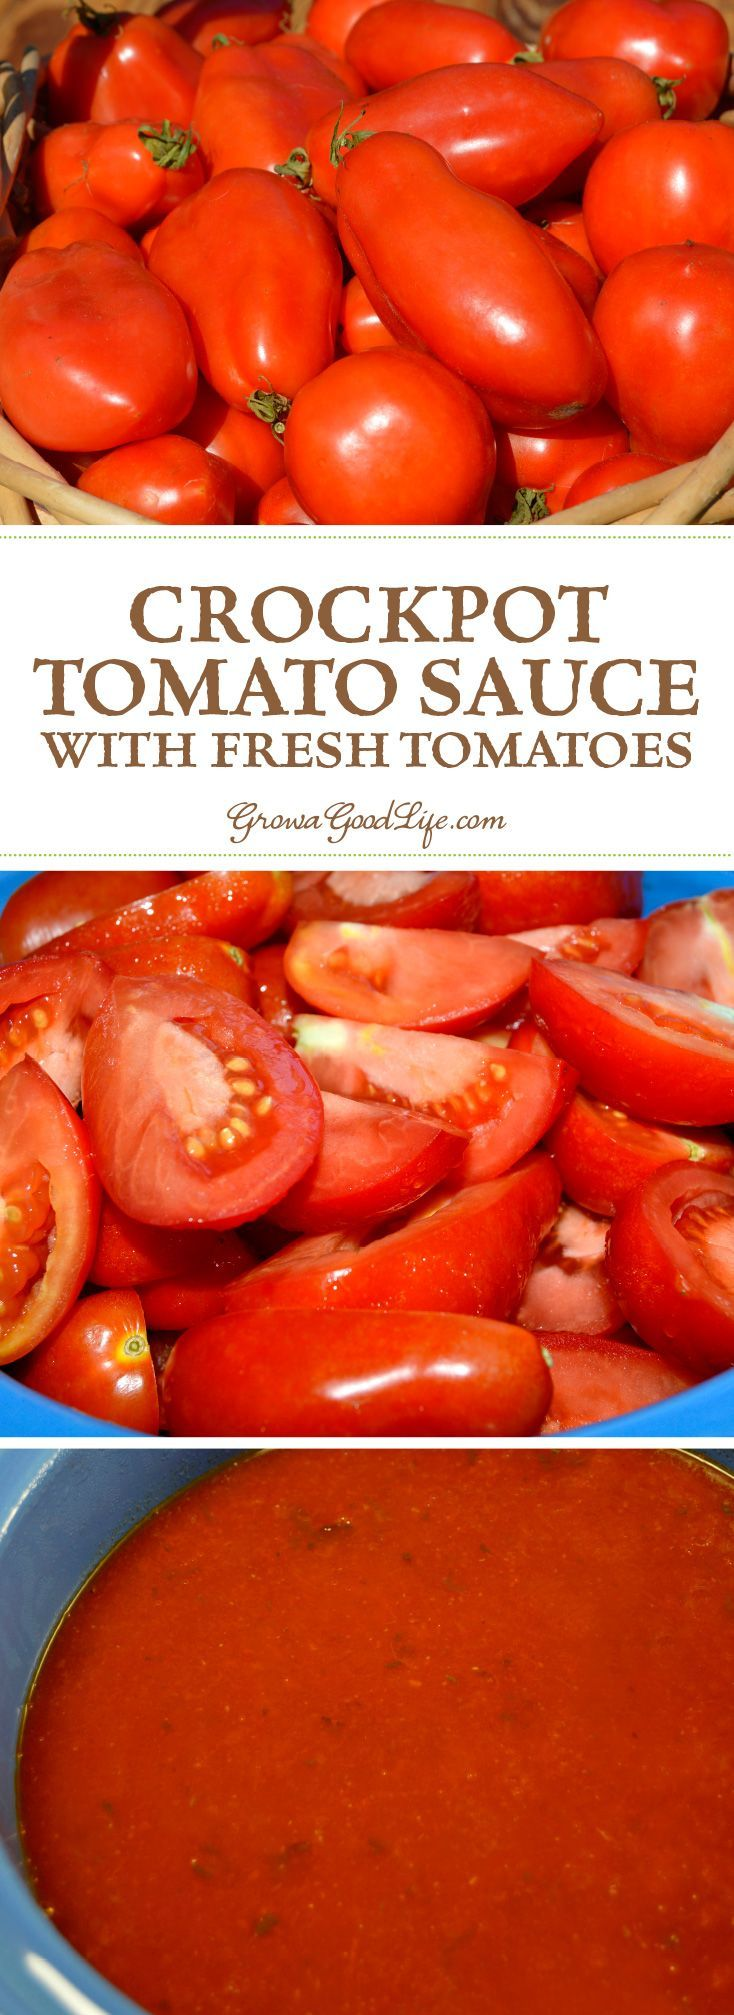 This easy, crockpot tomato sauce made with fresh tomatoes is rich and flavorful. It takes little effort to fill the slow cooker up with all the ingredients and let it simmer all day.